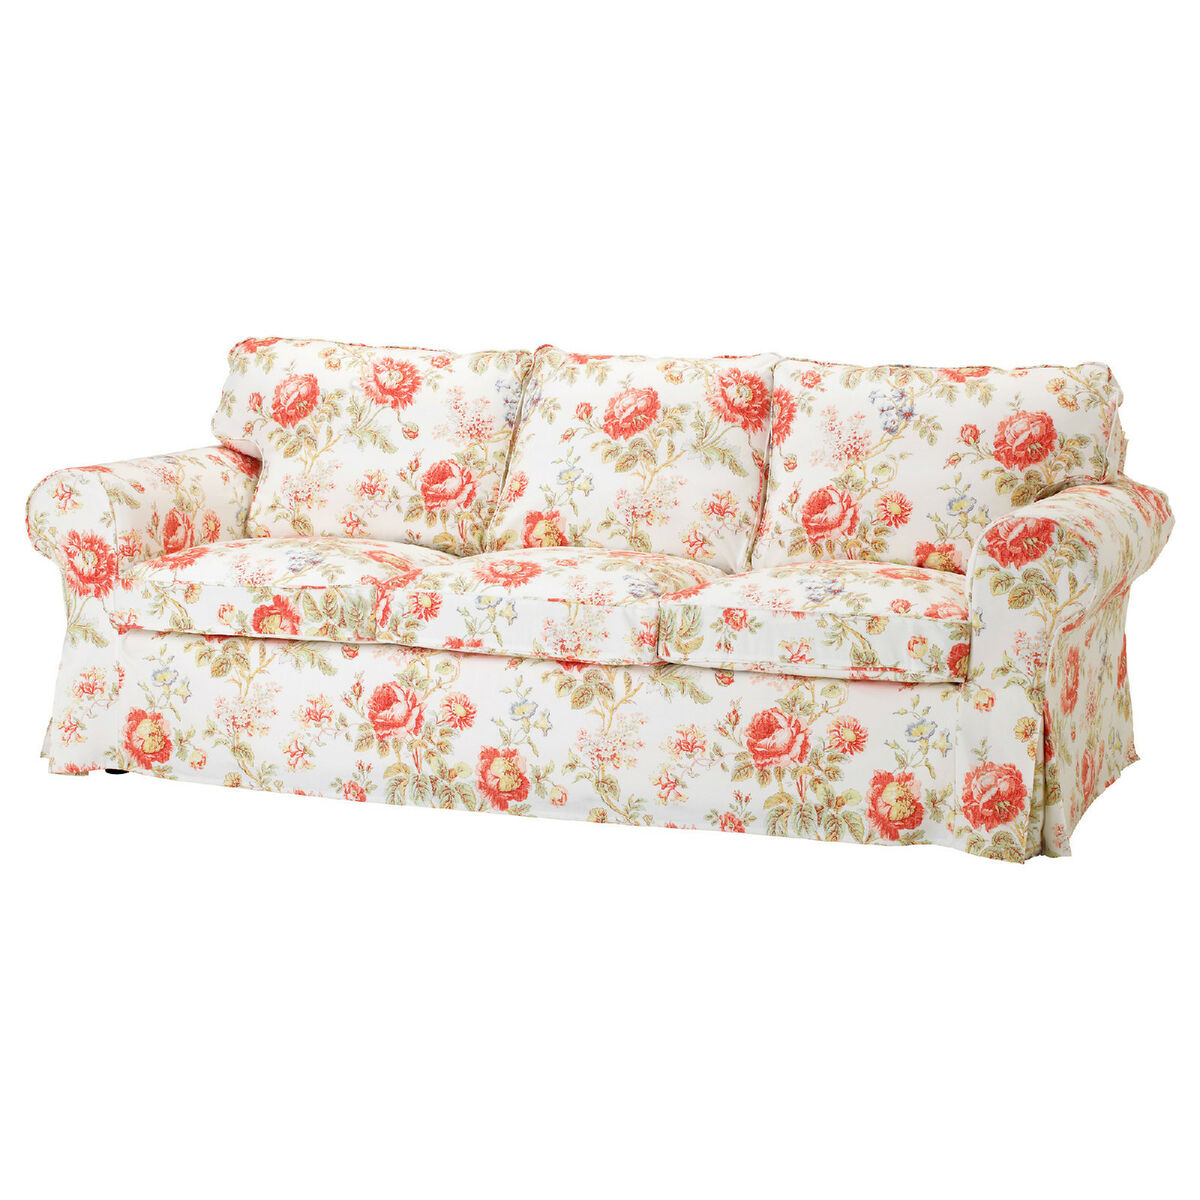 IKEA Ektorp 3 Seat Sofa Removable Cover Byvik Multicolor